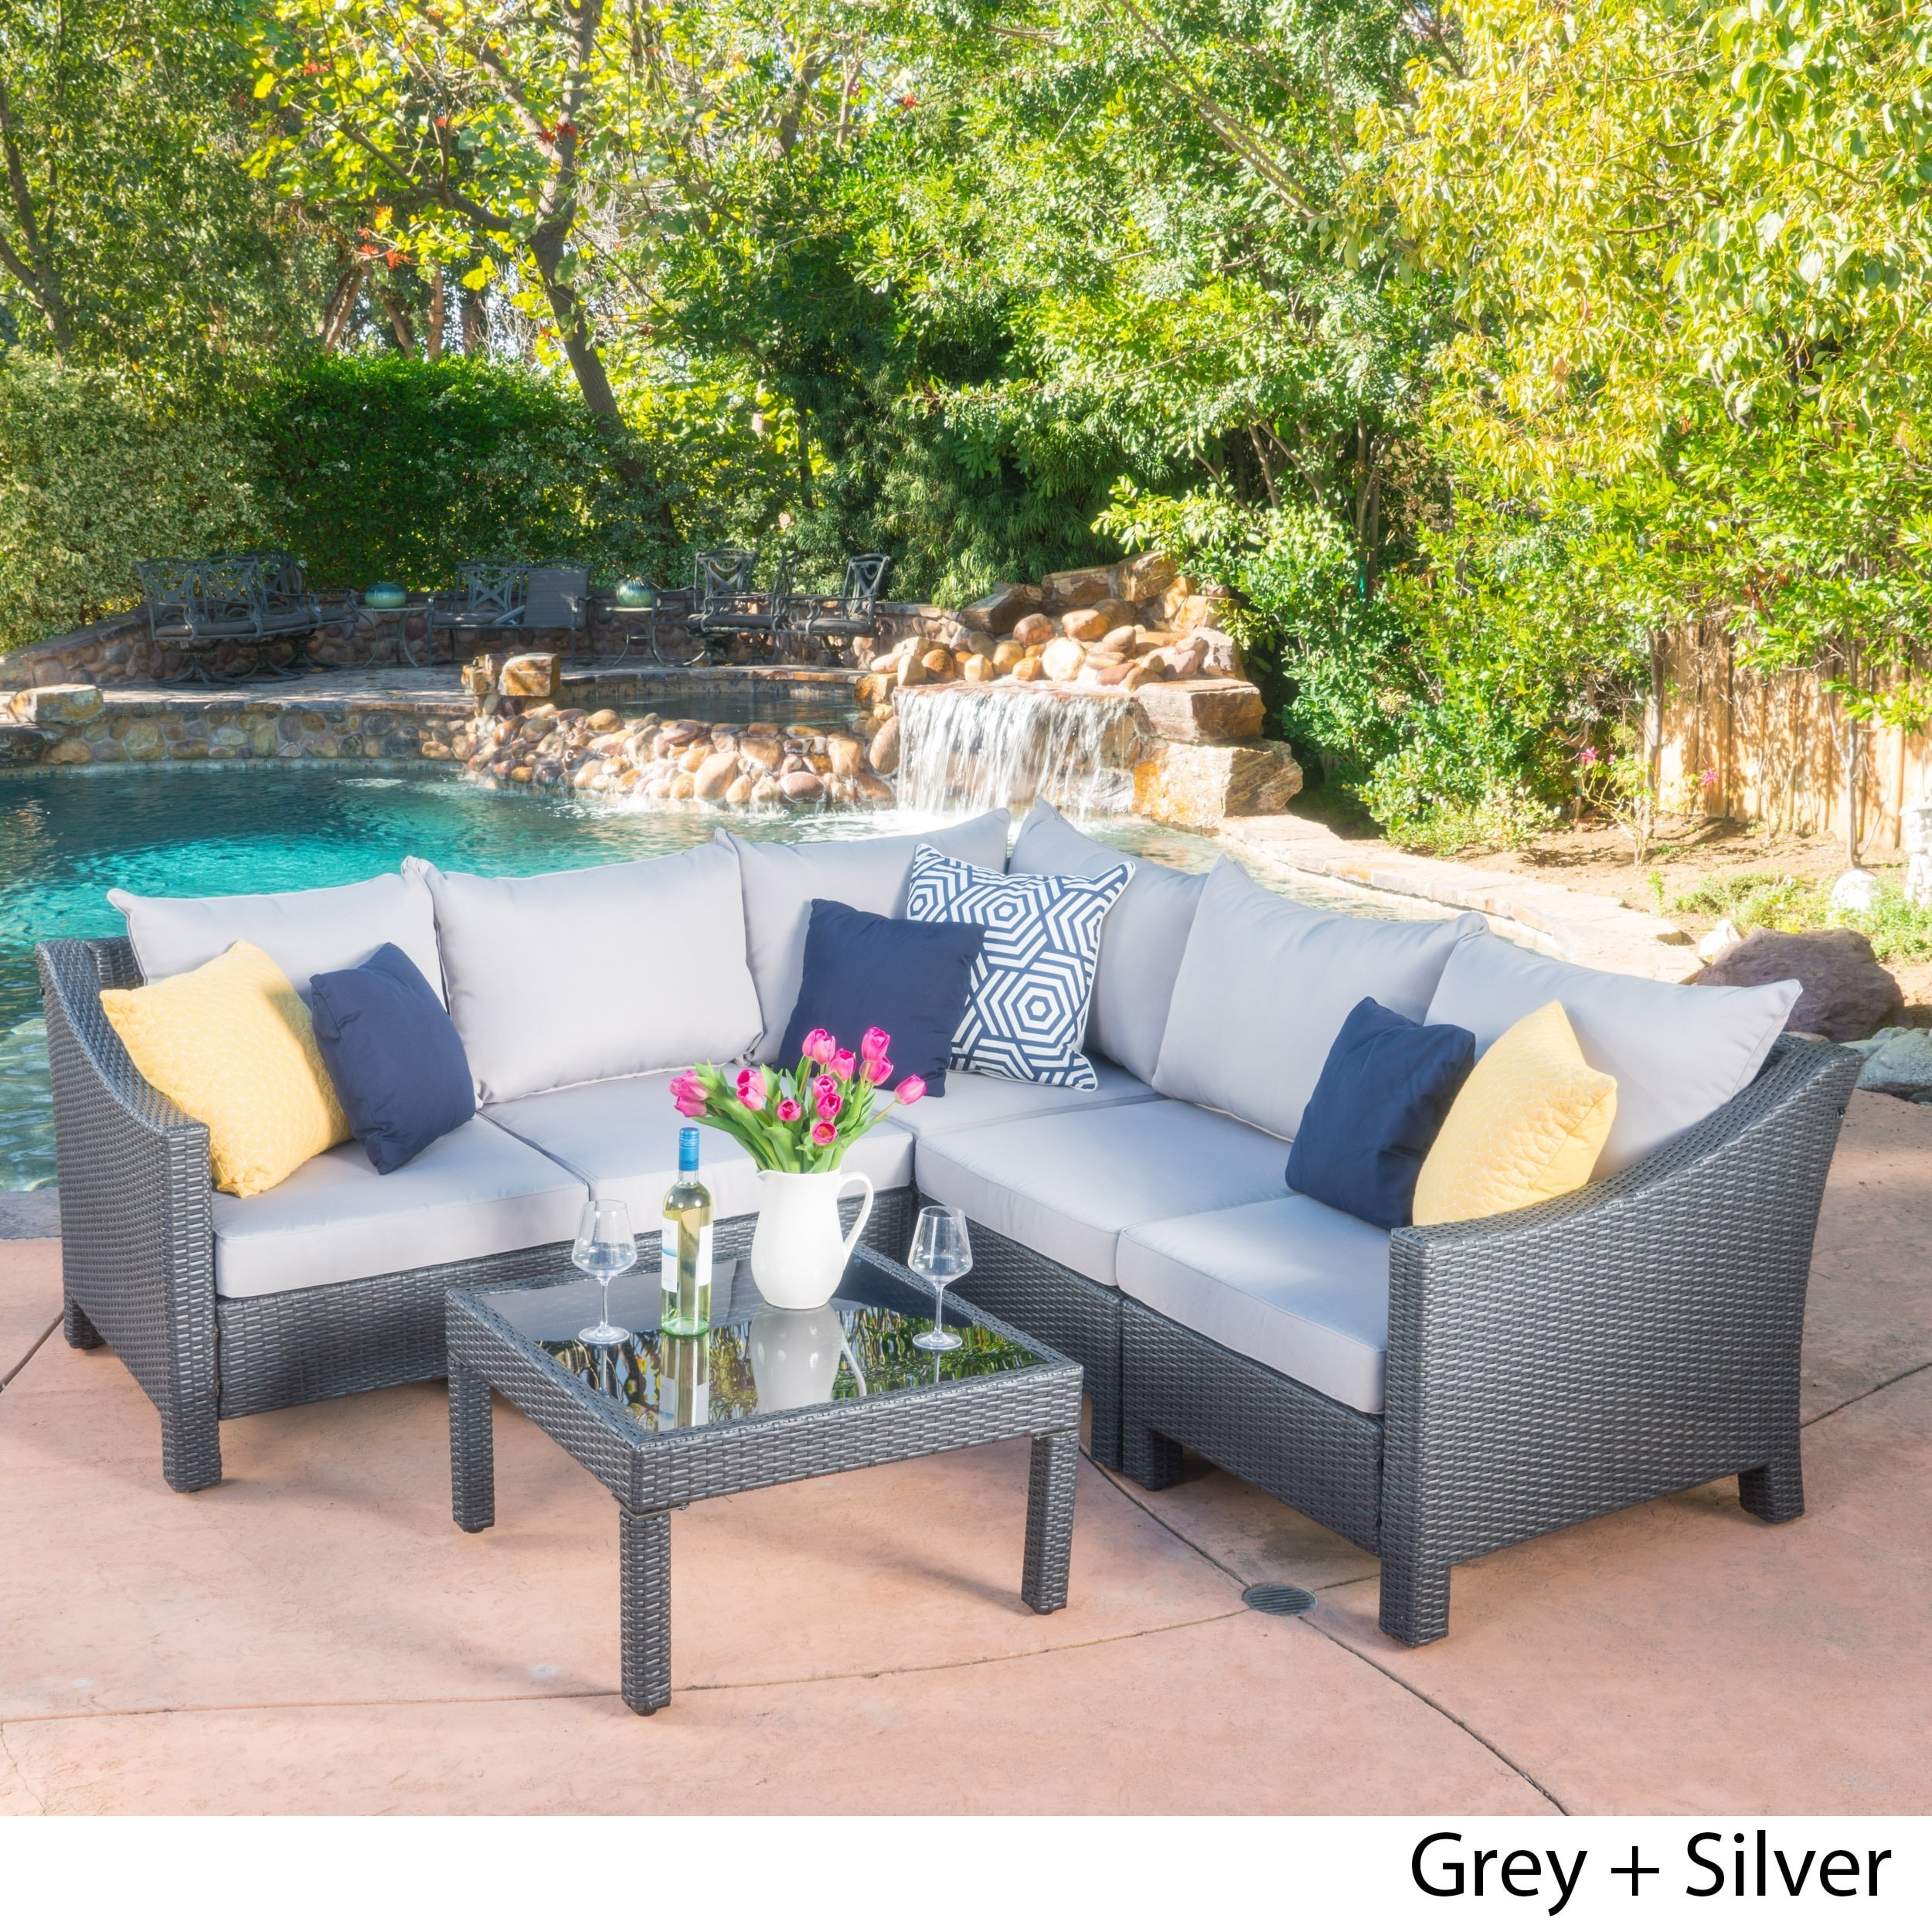 christopher knight home puerta grey outdoor wicker sofa set. Antibes Outdoor 6-piece V Shaped Sectional Sofa Set With Cushions By Christopher Knight Home Puerta Grey Wicker